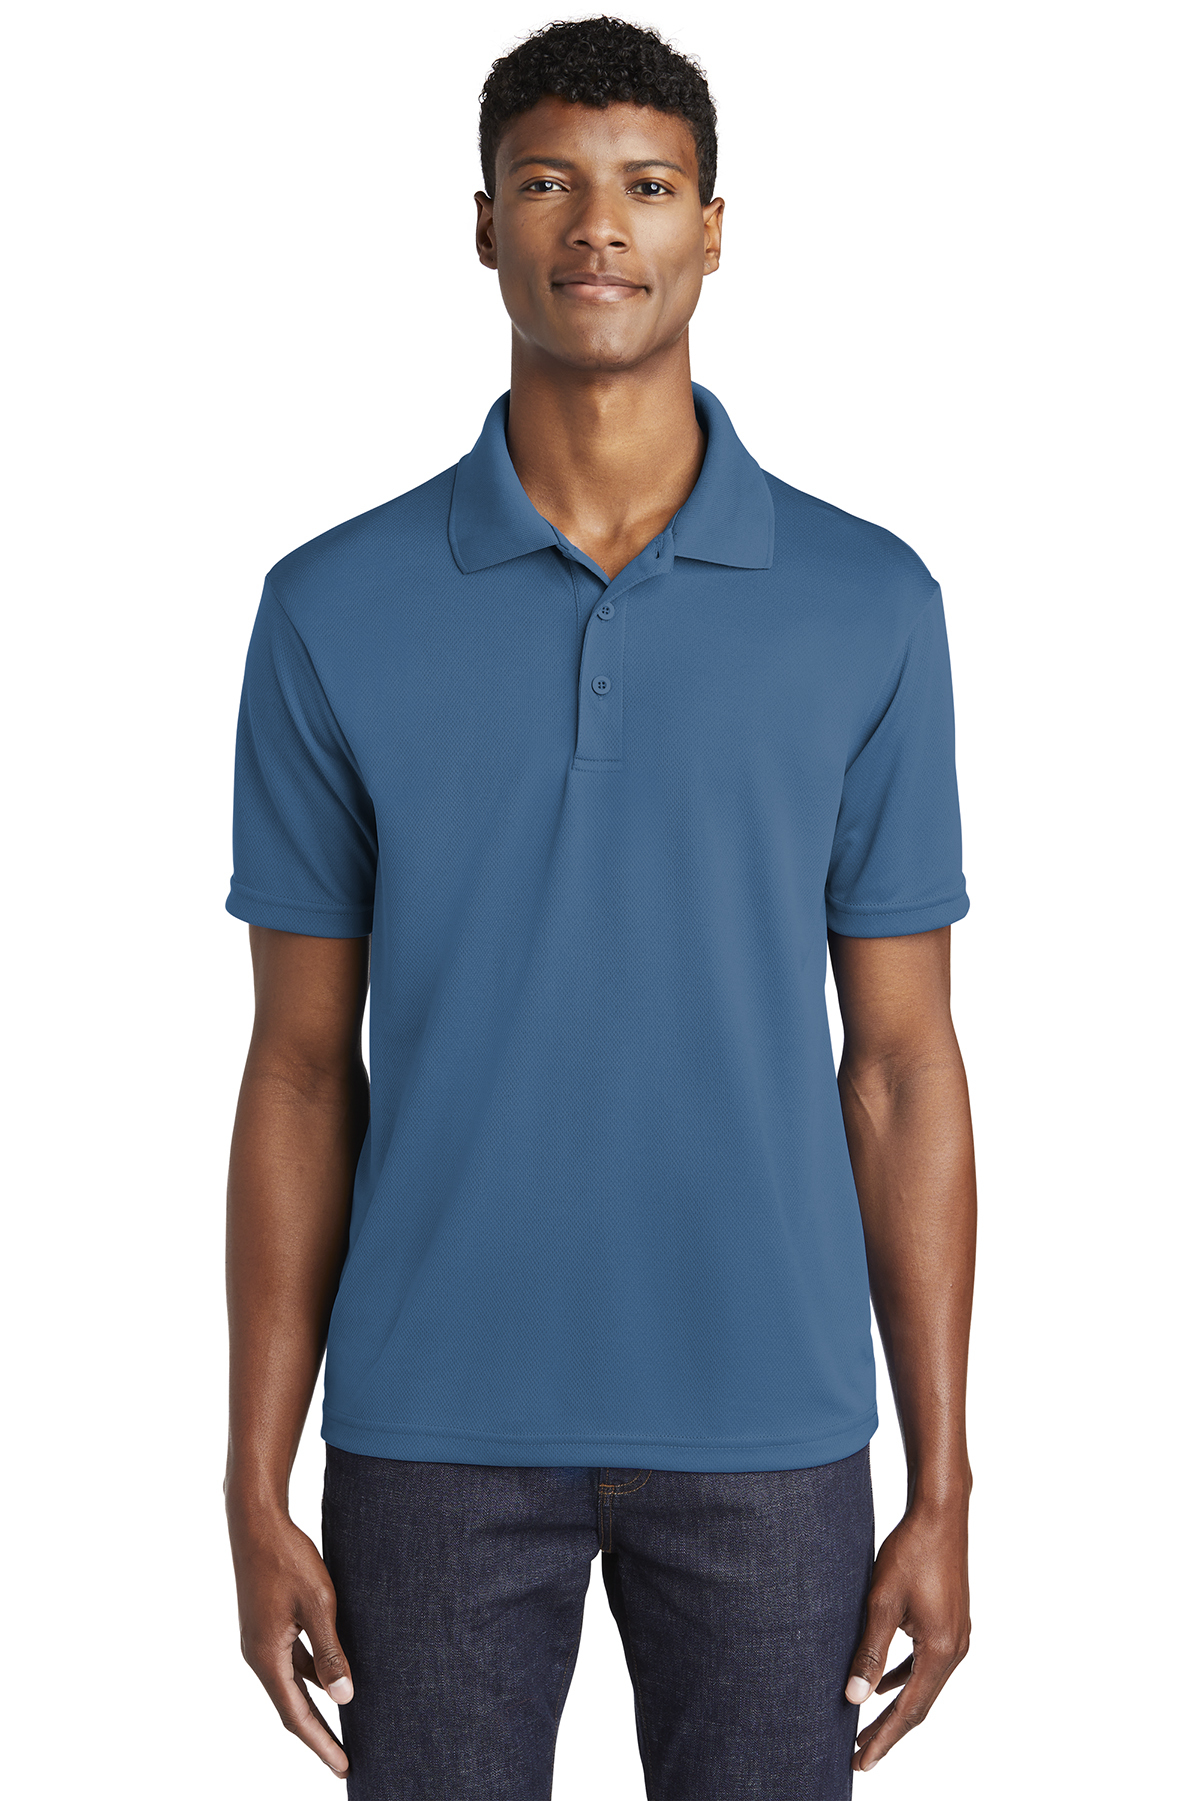 Sport Tek Posicharge Racermesh Polo Performance Polos Knits Sanmar Poshmark makes shopping fun, affordable & easy! sport tek posicharge racermesh polo performance polos knits sanmar